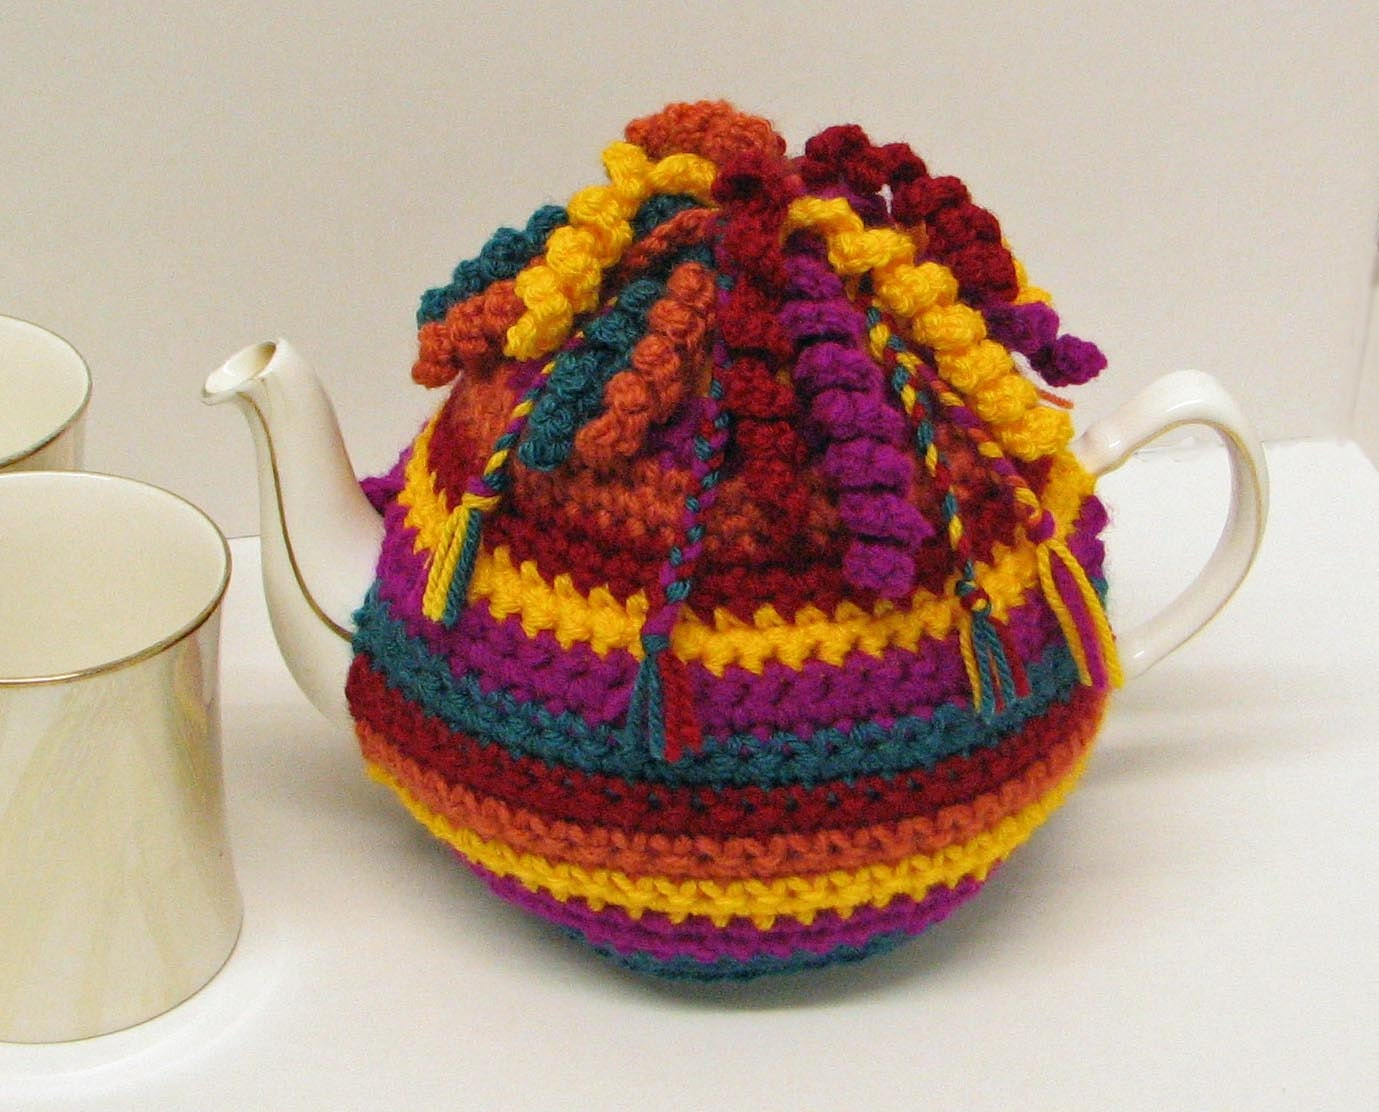 Free Tea Cosy Crochet Patterns Online : Crochet pattern for Tea Cosy / Cozy by KeepersCottageCrafts